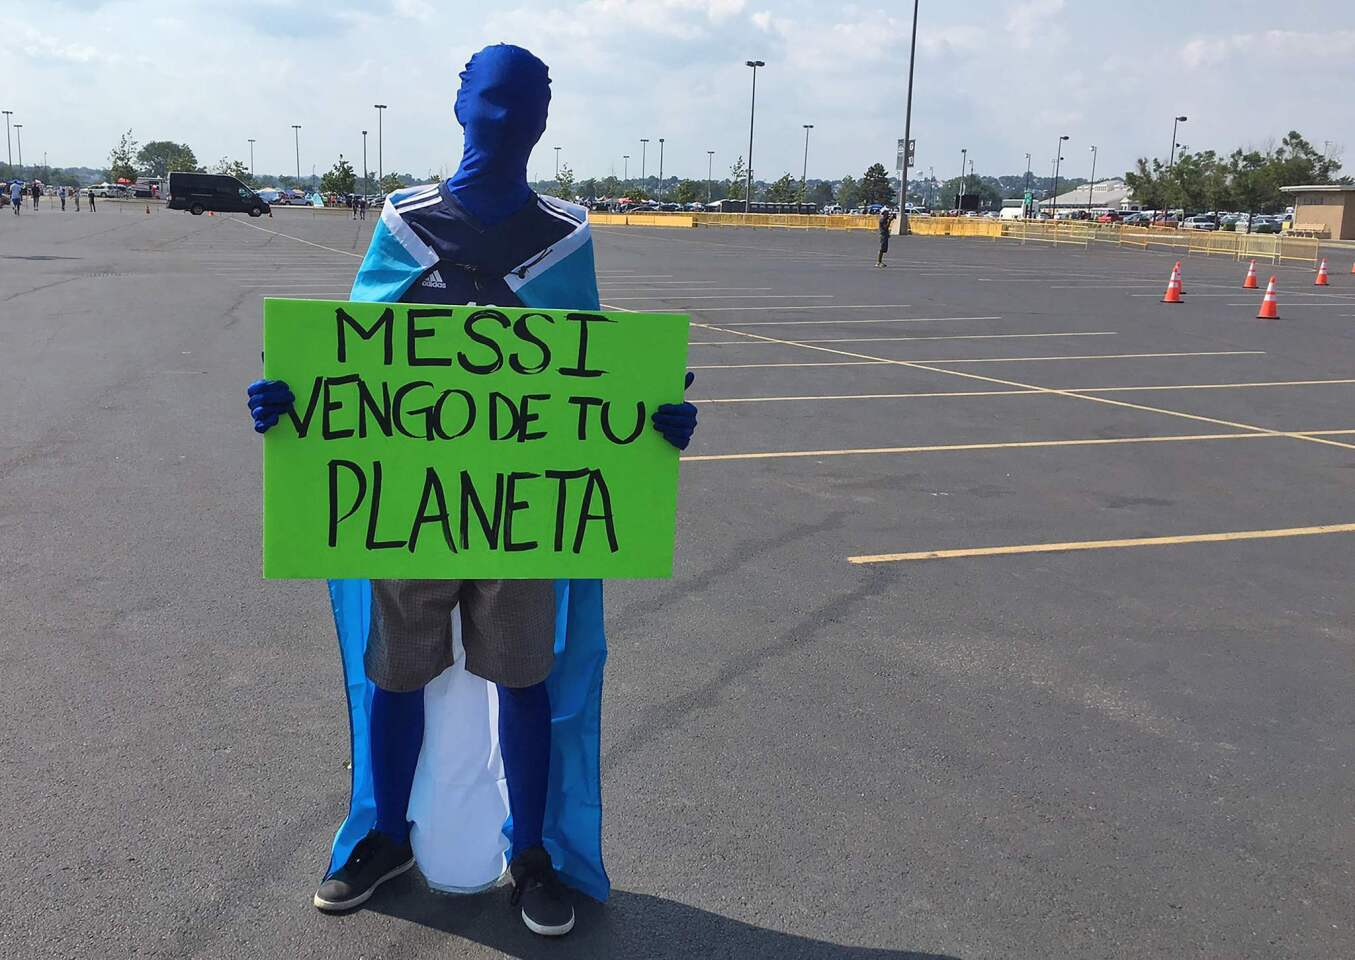 """A supporter of Argentina holds a sign reading """"Messi, I come from your planet"""" outside the Metlife stadium before the Copa America Centenario final match against Chile in East Rutherford, New Jersey, United States, on June 26, 2016. / AFP PHOTO / Daniel SLIMDANIEL SLIM/AFP/Getty Images ** OUTS - ELSENT, FPG, CM - OUTS * NM, PH, VA if sourced by CT, LA or MoD **"""